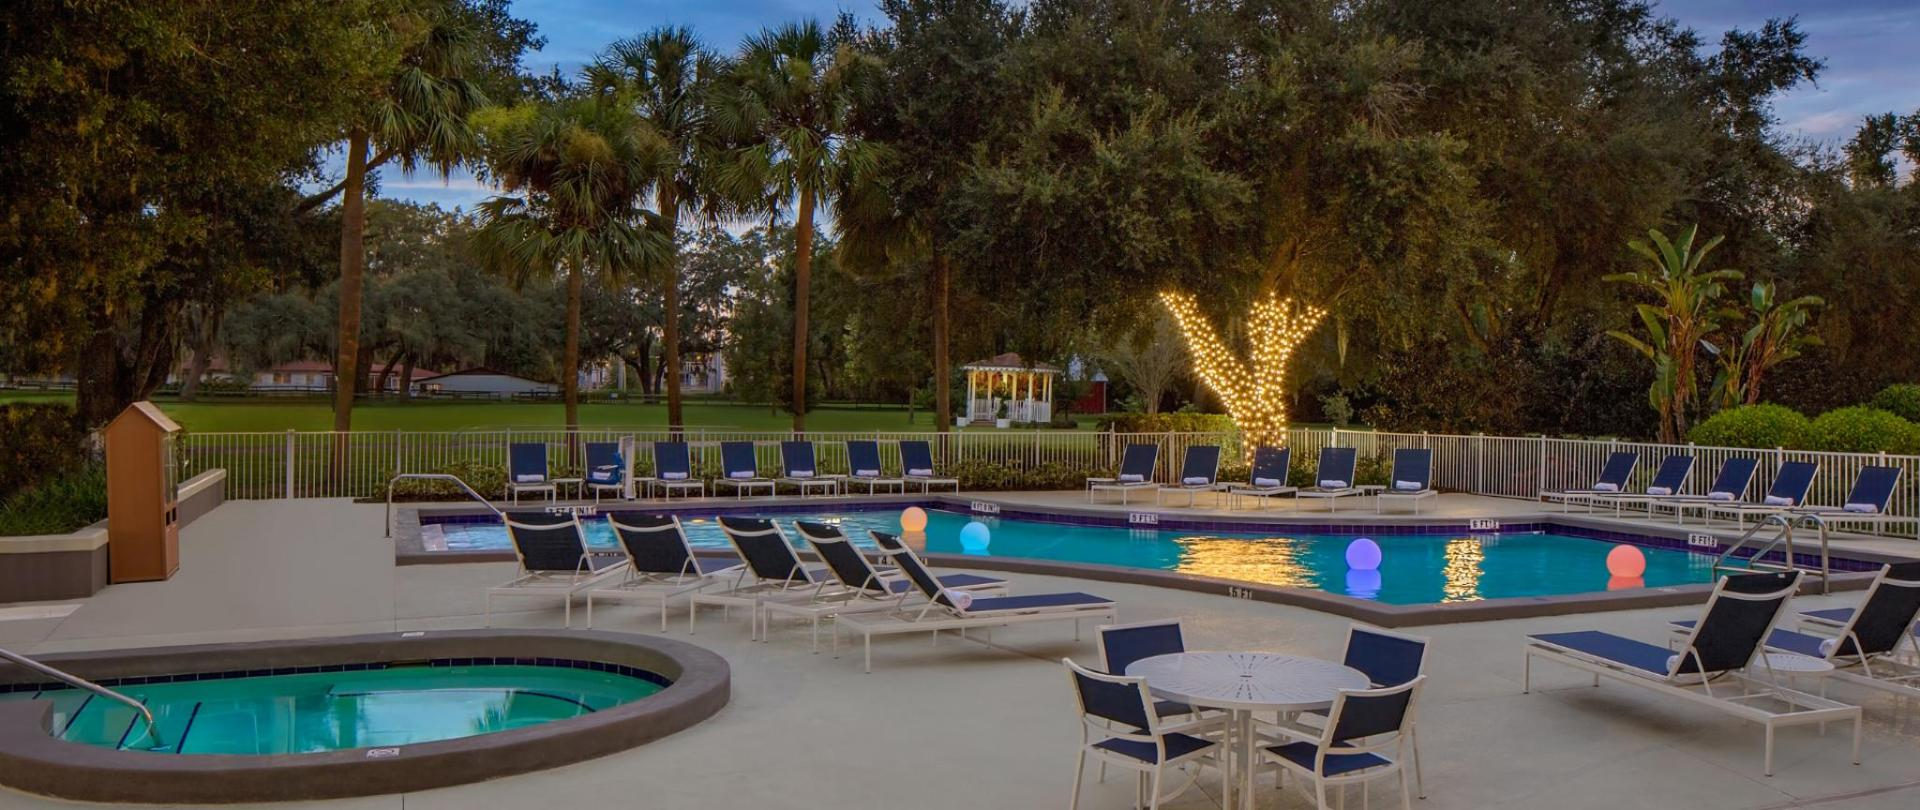 Hilton Ocala - Ocala Conference Center with over 40,000 sq ft of ...